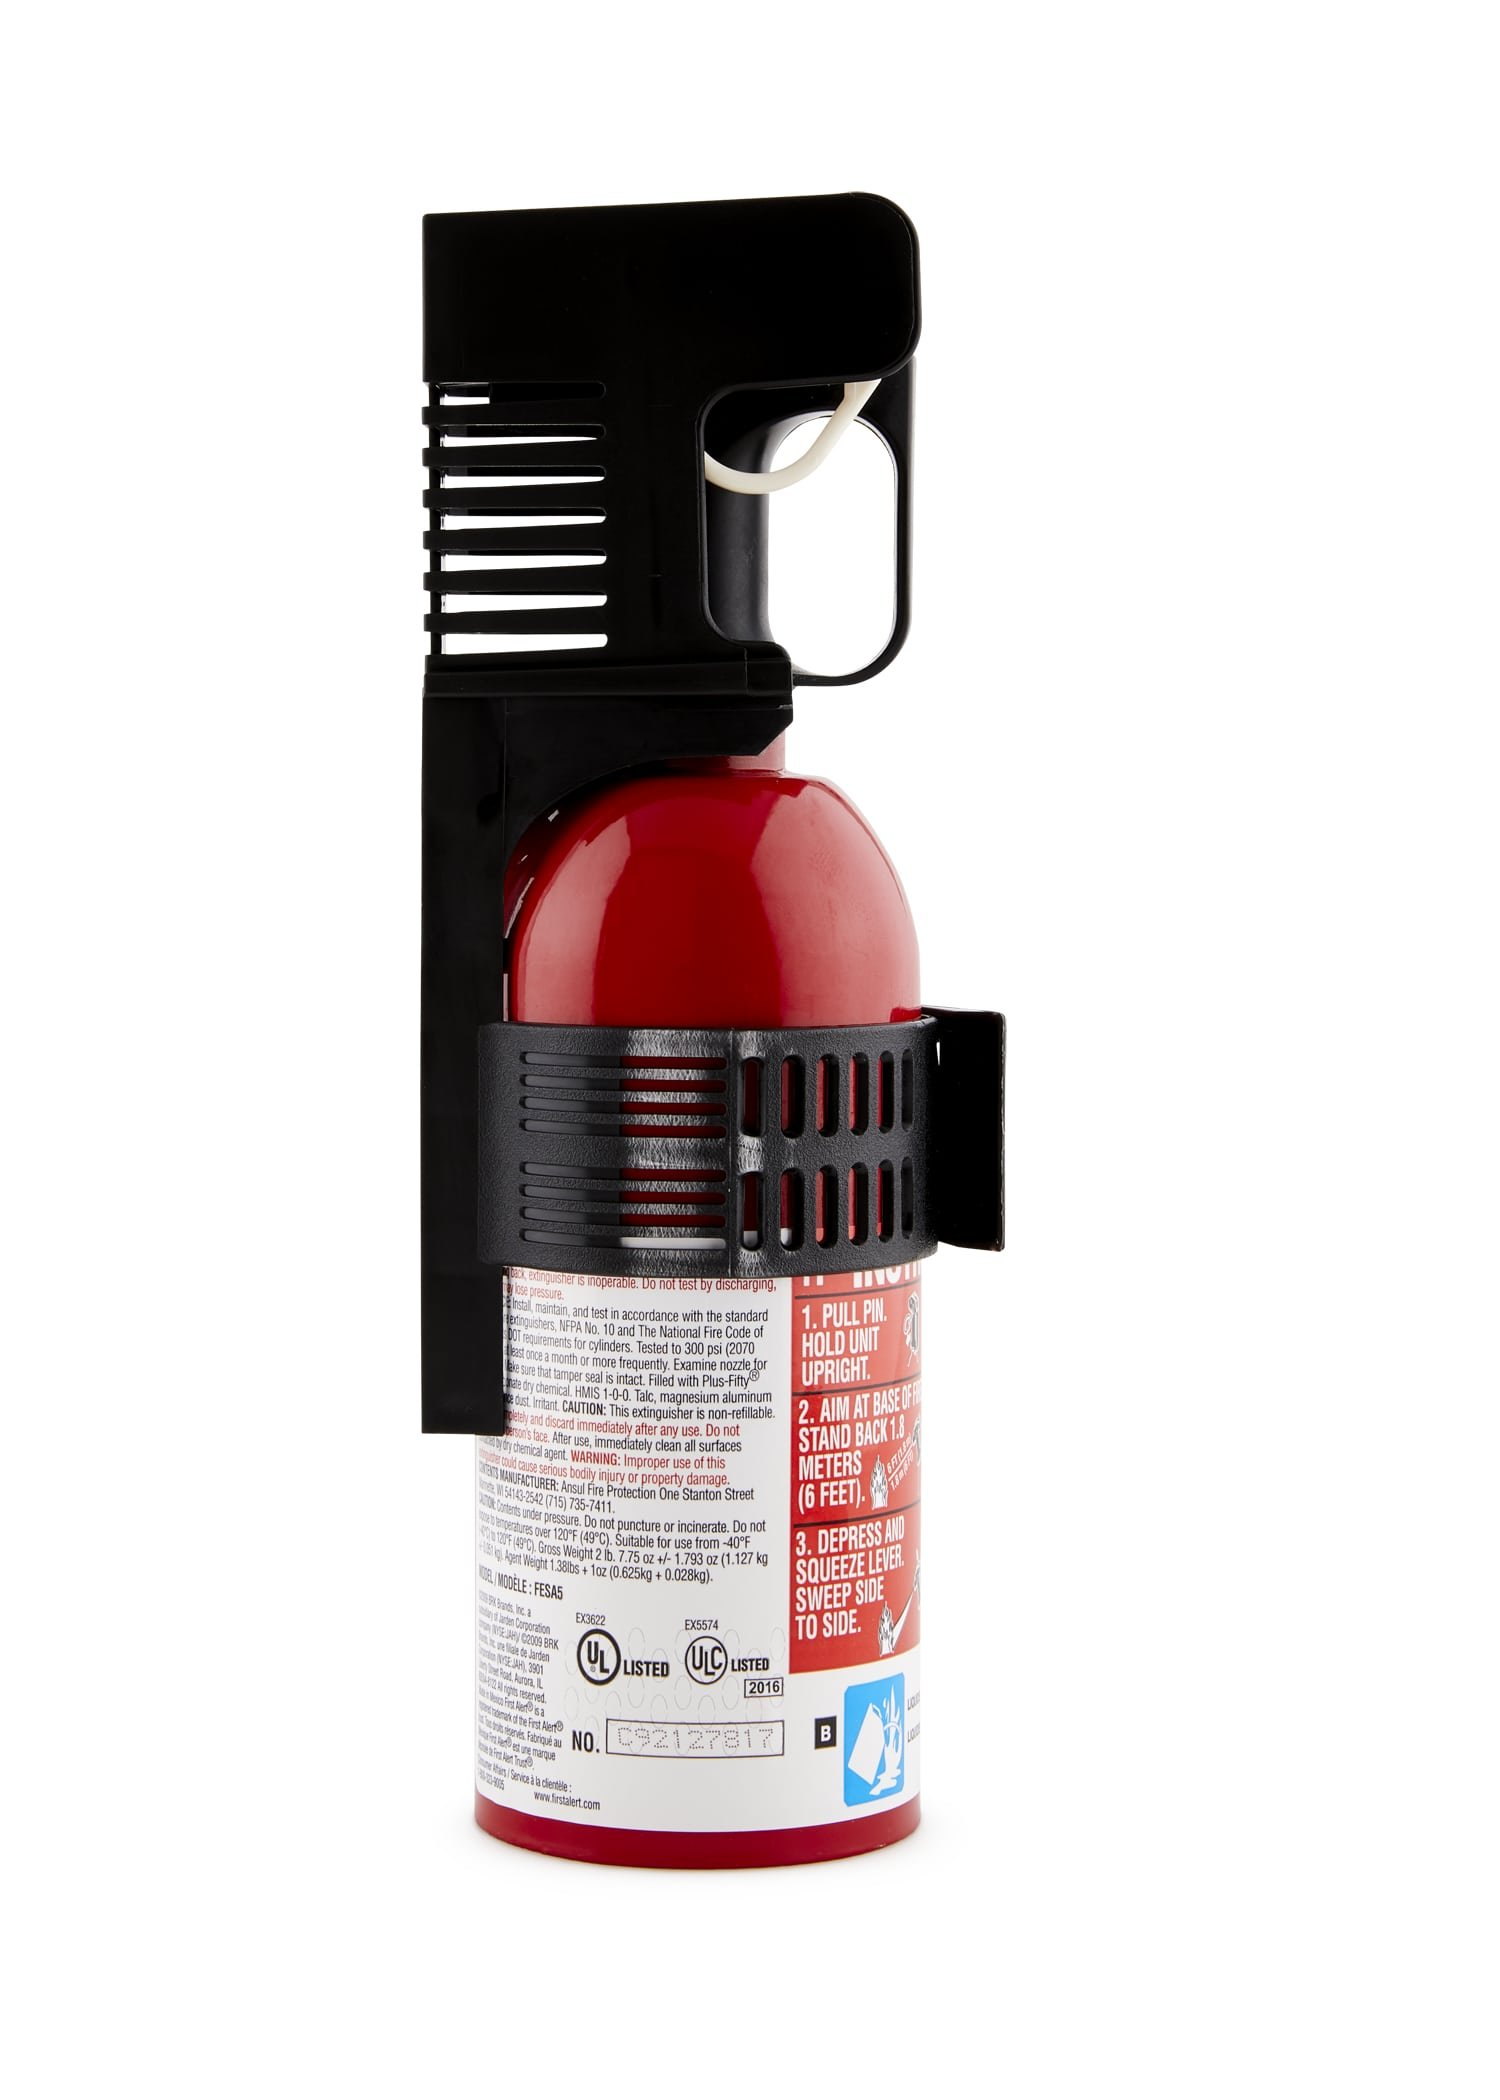 First Alert AUTO5 Auto Fire Extinguisher, Red by First Alert (Image #4)